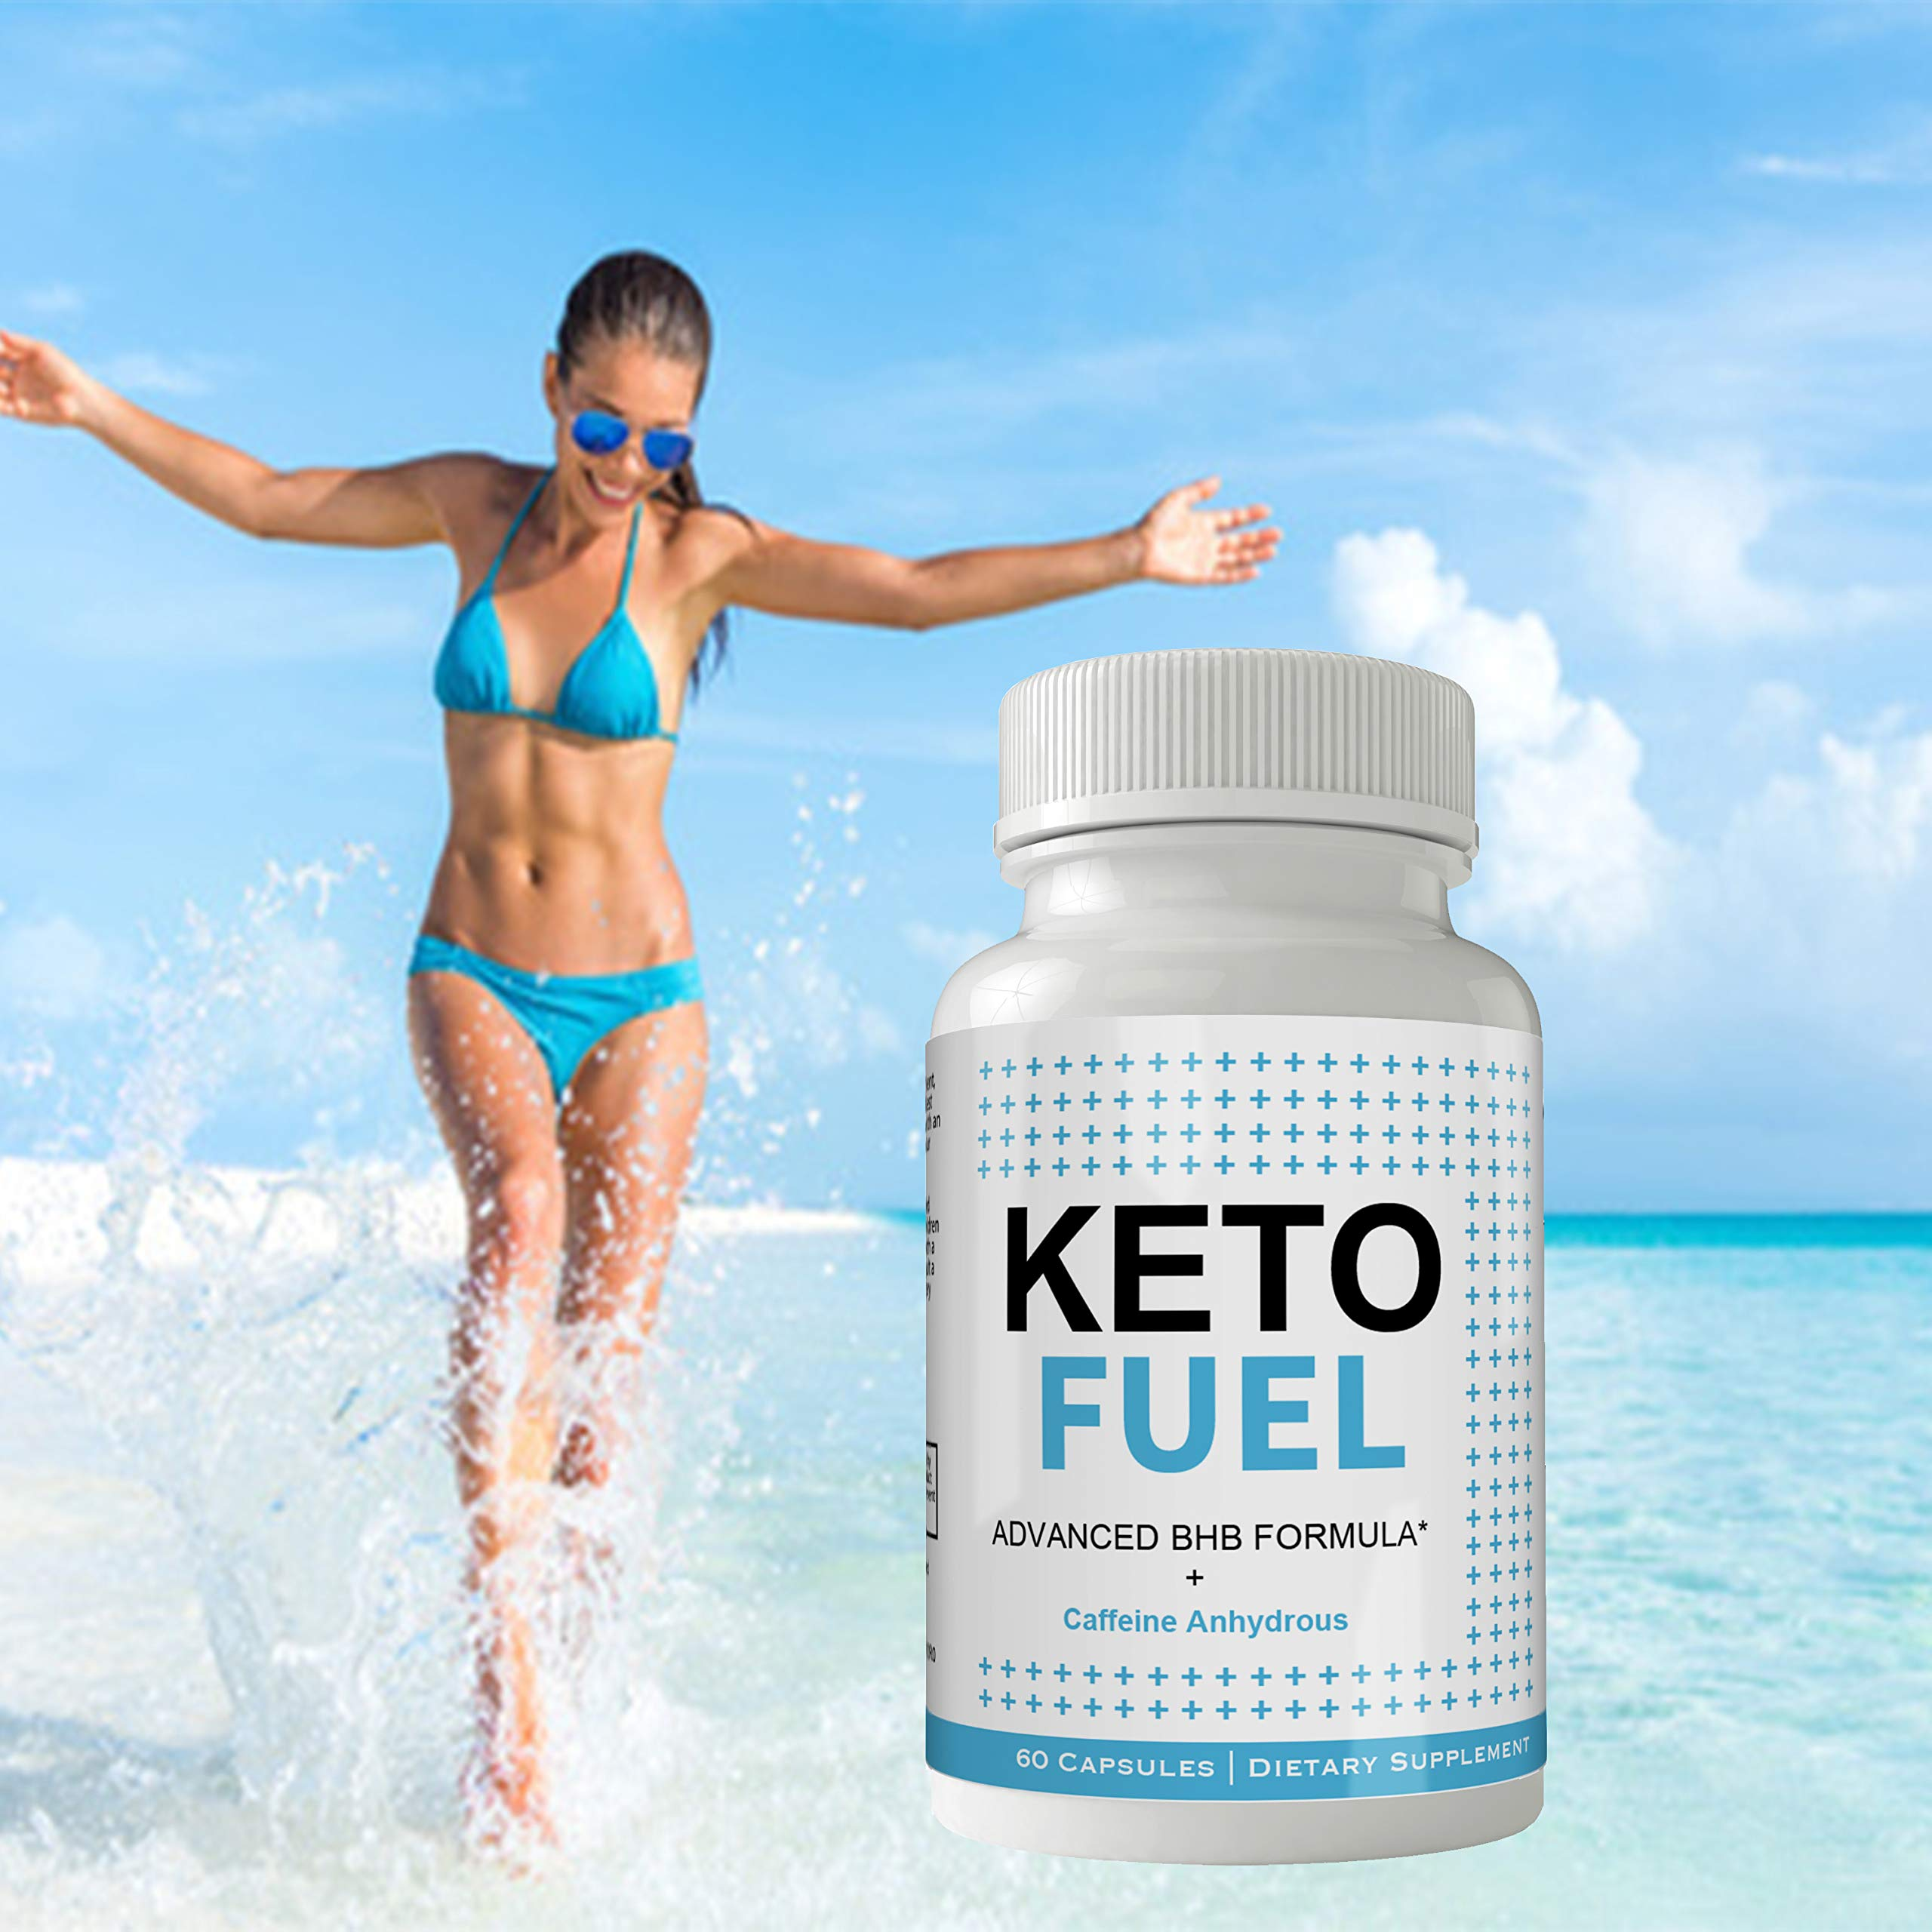 Keto Fuel Weight Loss Pills Advance Weight Loss Supplement Appetite Suppressant Natural Ketogenic 800 mg Formula with BHB Salts Ketone Diet Capsules to Boost Metabolism, Energy and Focus by nutra4health LLC (Image #4)